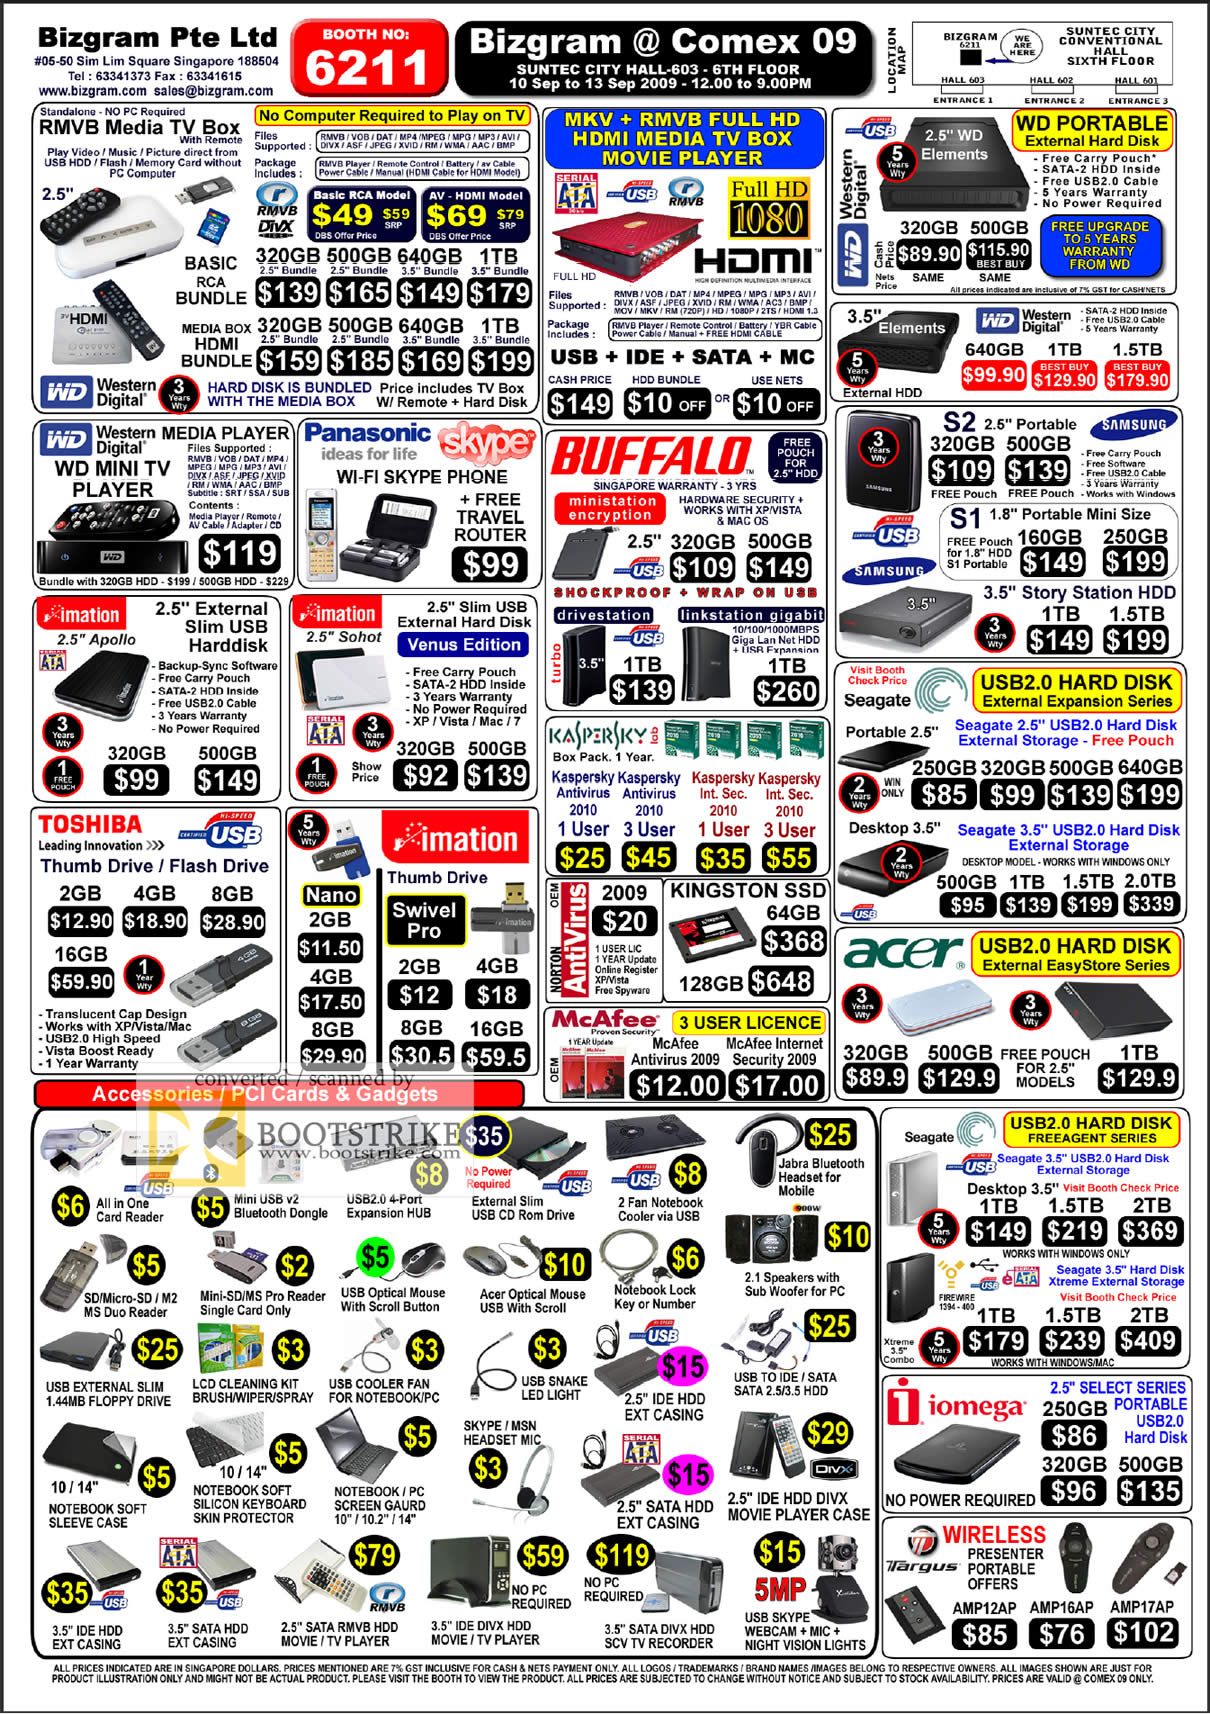 Comex 2009 price list image brochure of Bizgram Media TV Box WD Western Digital Buffalo Seagate Acer Toshiba Imation